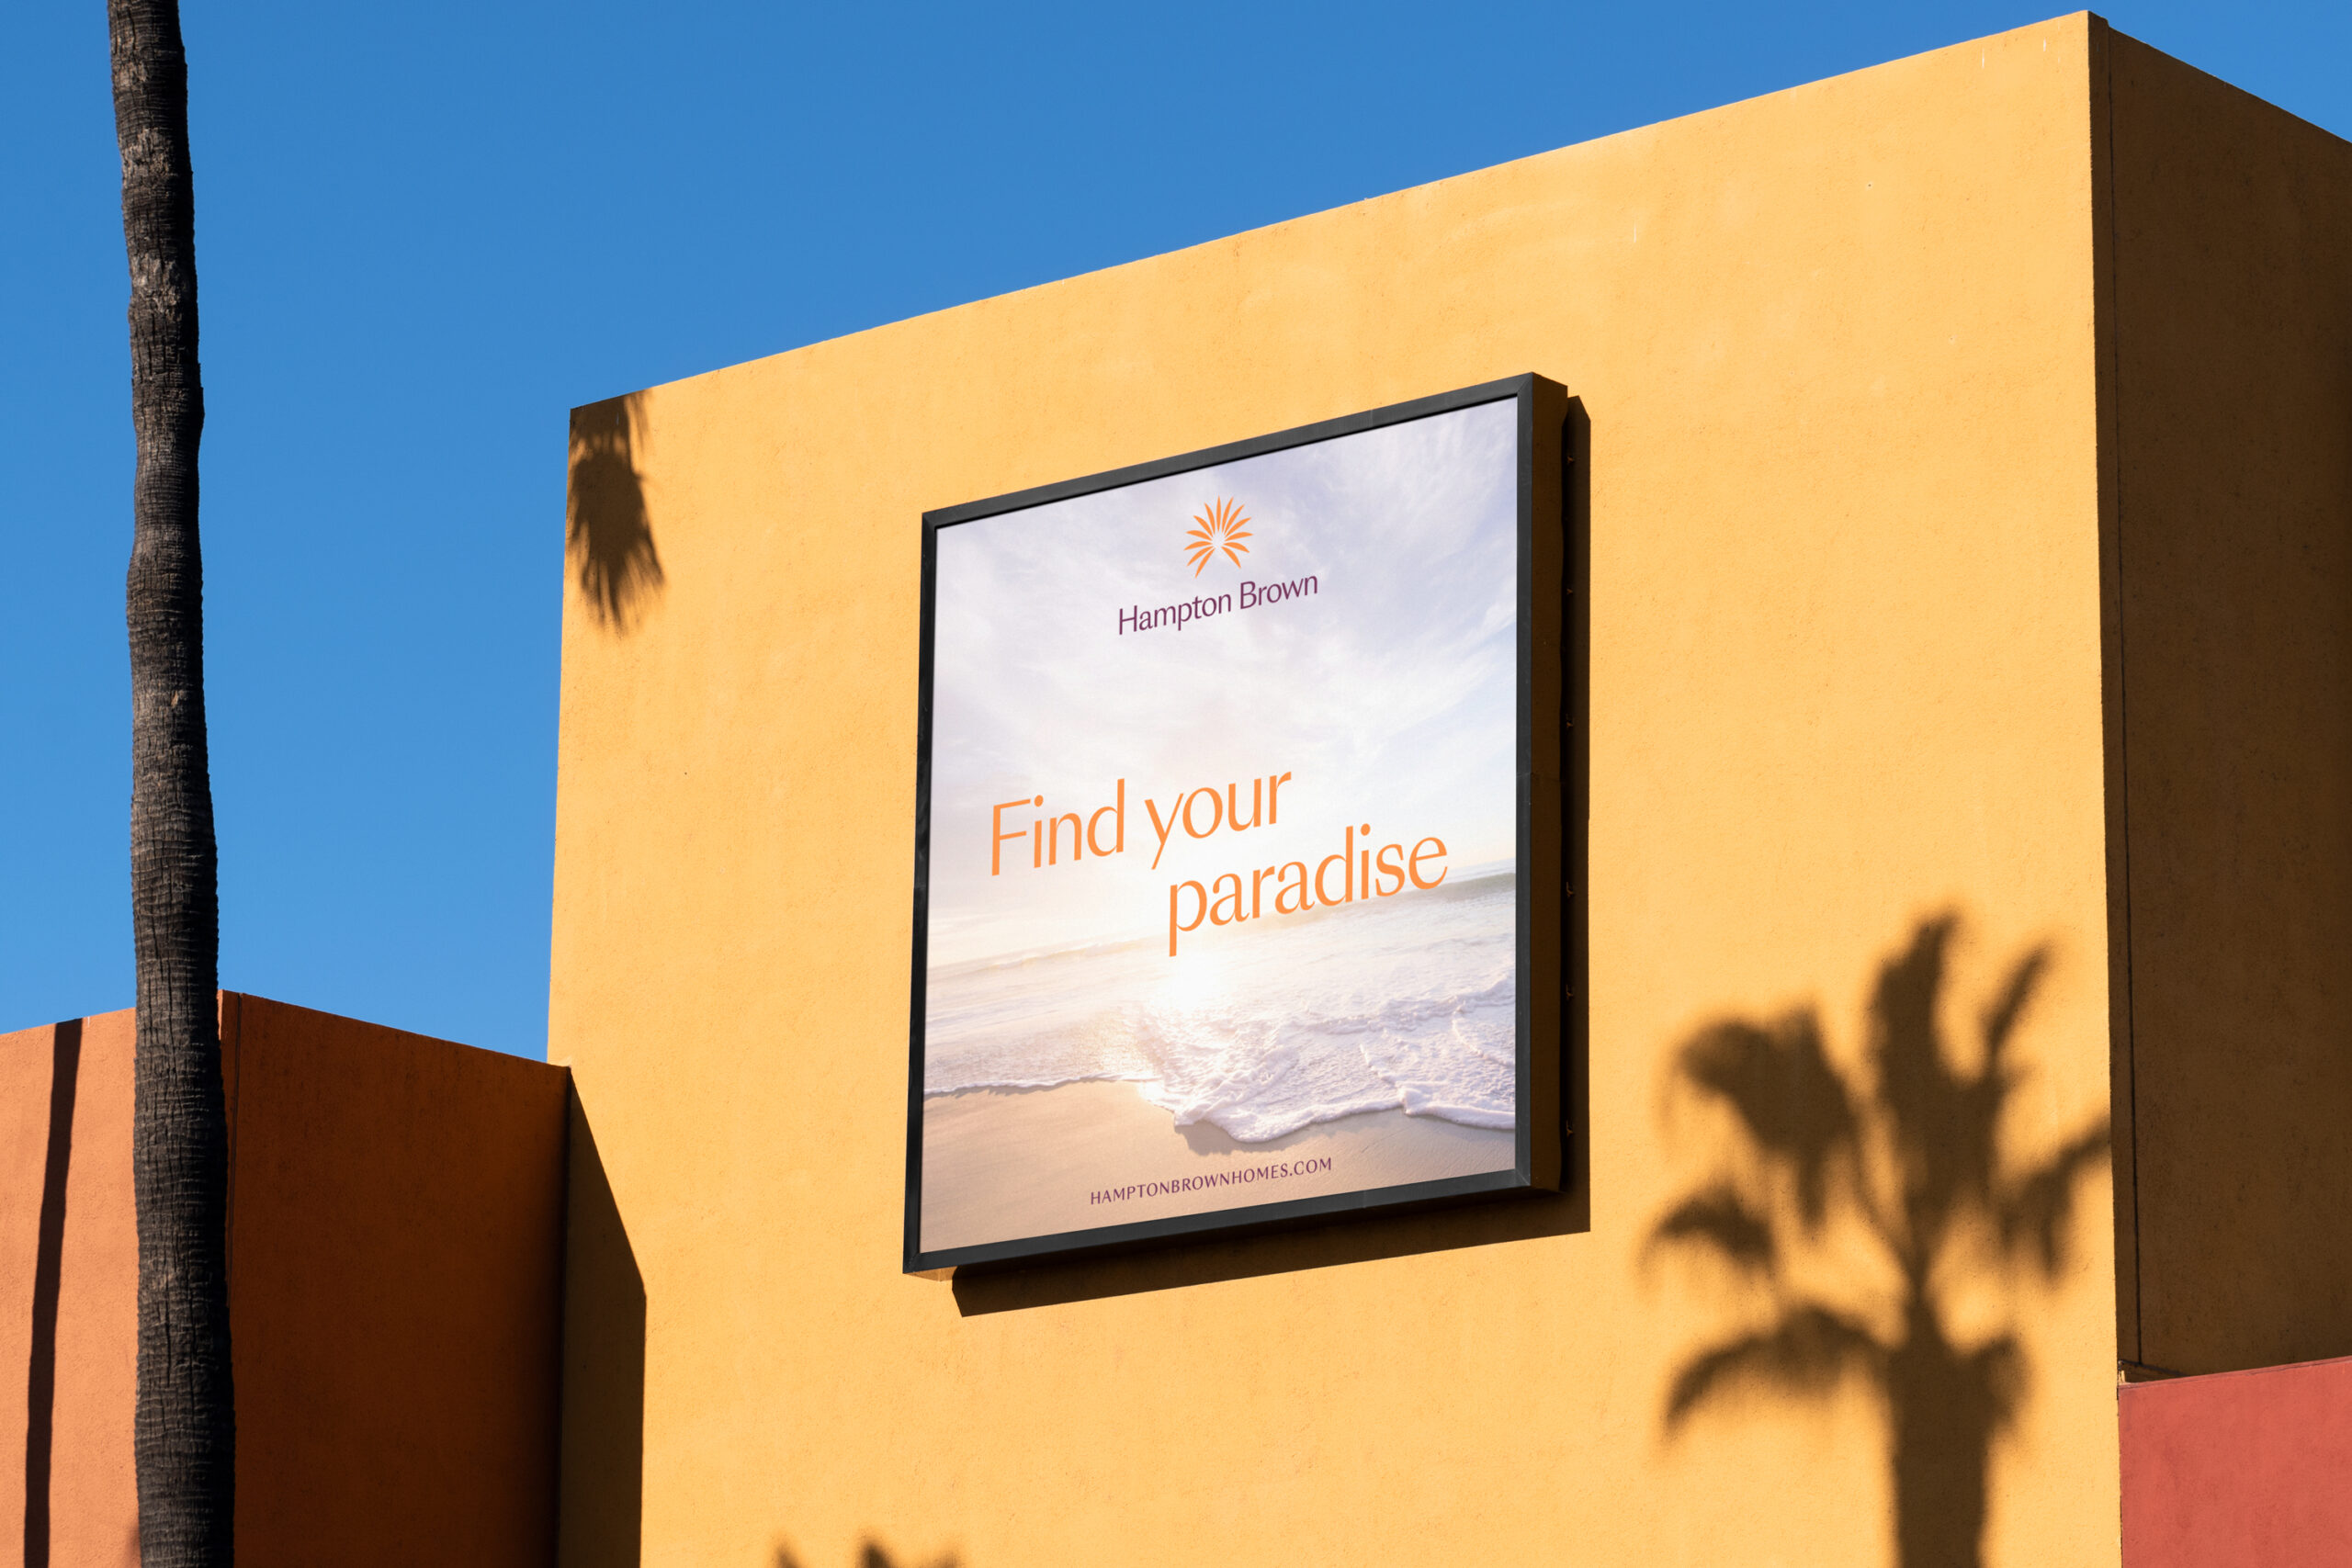 Hampton Brown billboard ad on side of building in sunny city